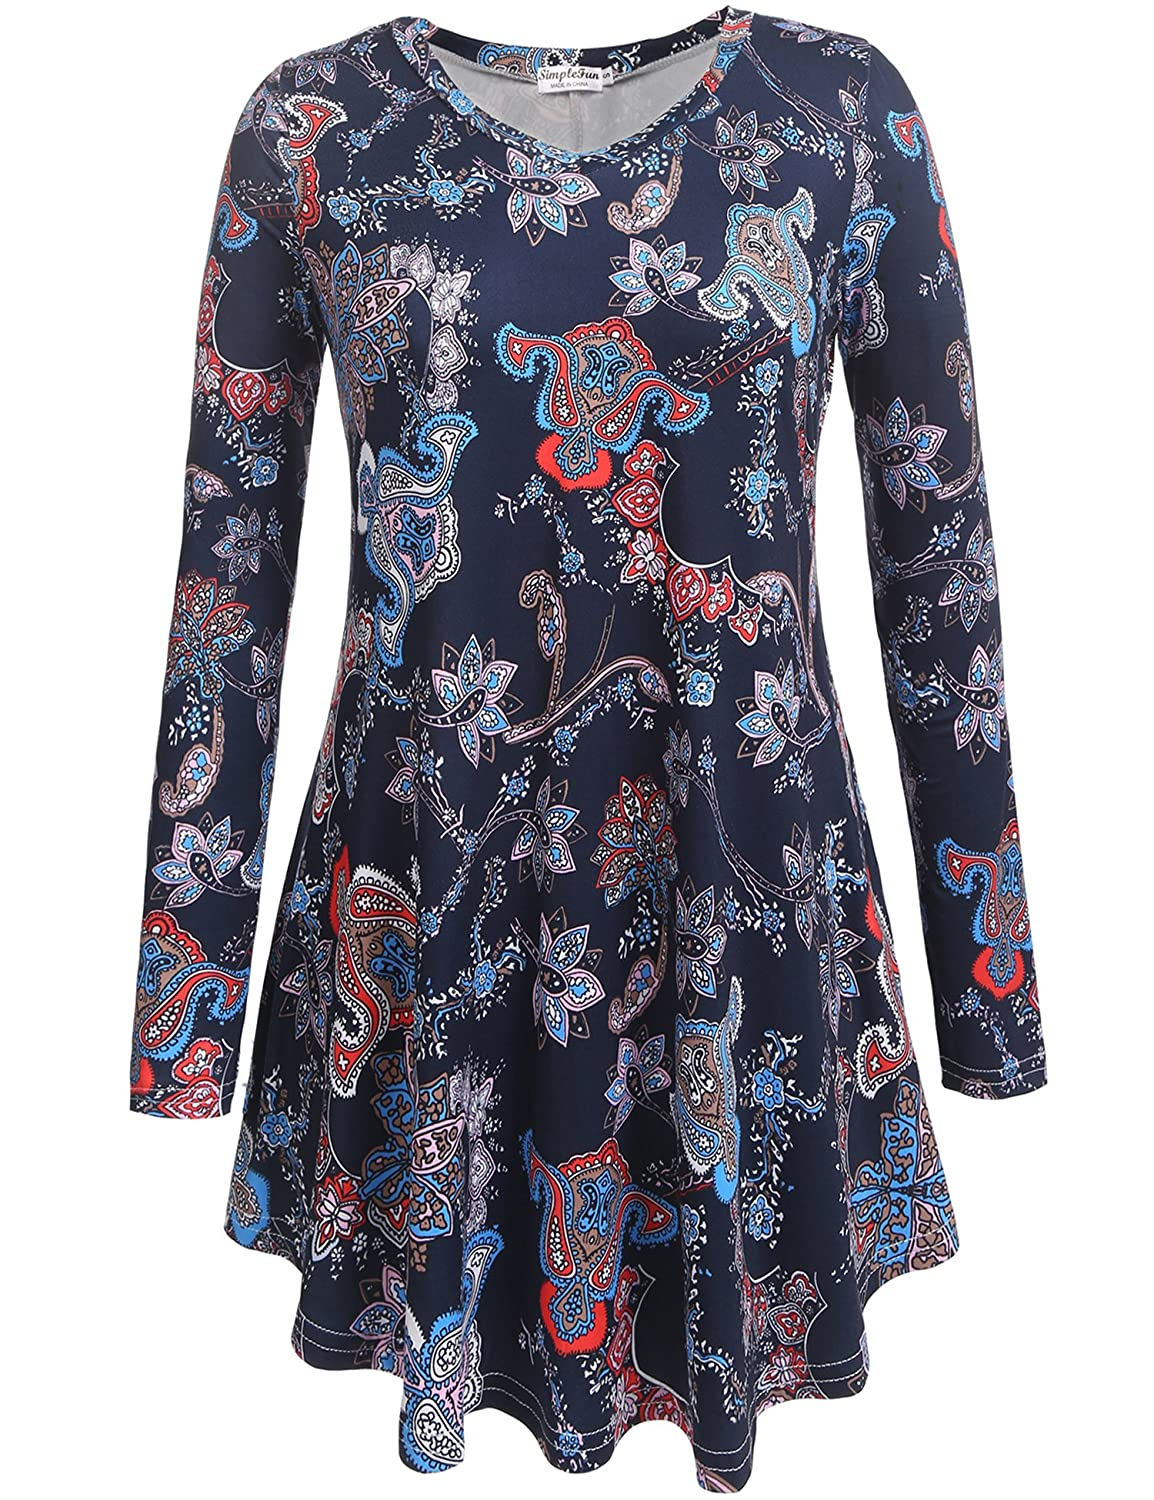 Women's V Neck Long sleeve Flowy Casual Tunic Tops Floral Shirts Loose Blouses CCX00457